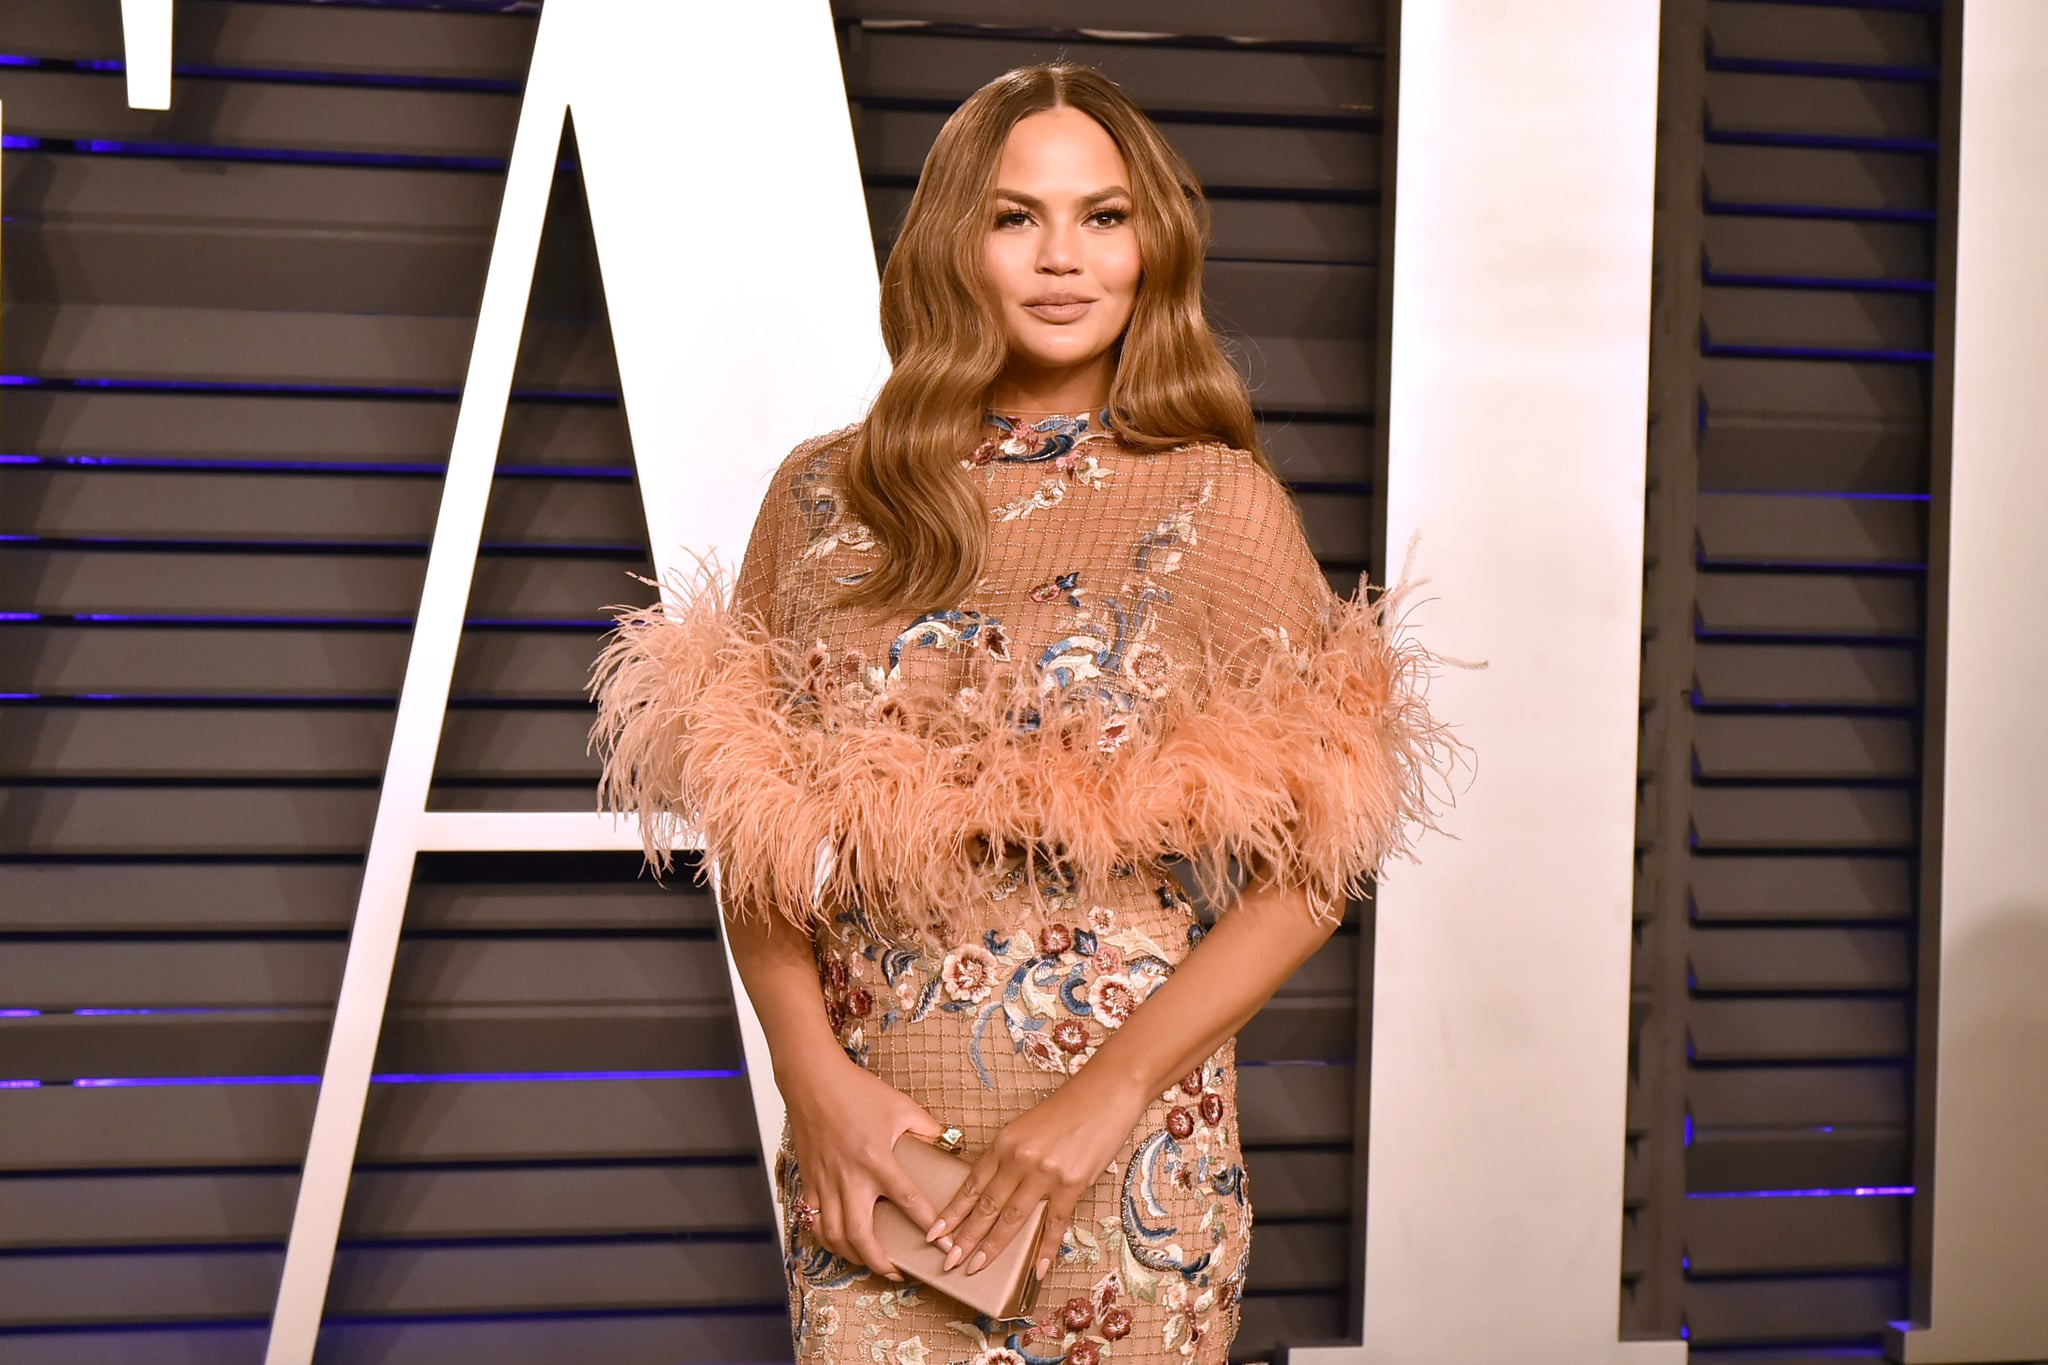 BEVERLY HILLS, CALIFORNIA - FEBRUARY 24: Chrissy Teigen attends the 2019 Vanity Fair Oscar Party at Wallis Annenberg Centre for the Performing Arts on February 24, 2019 in Beverly Hills, California. (Photo by David Crotty/Patrick McMullan via Getty Images)